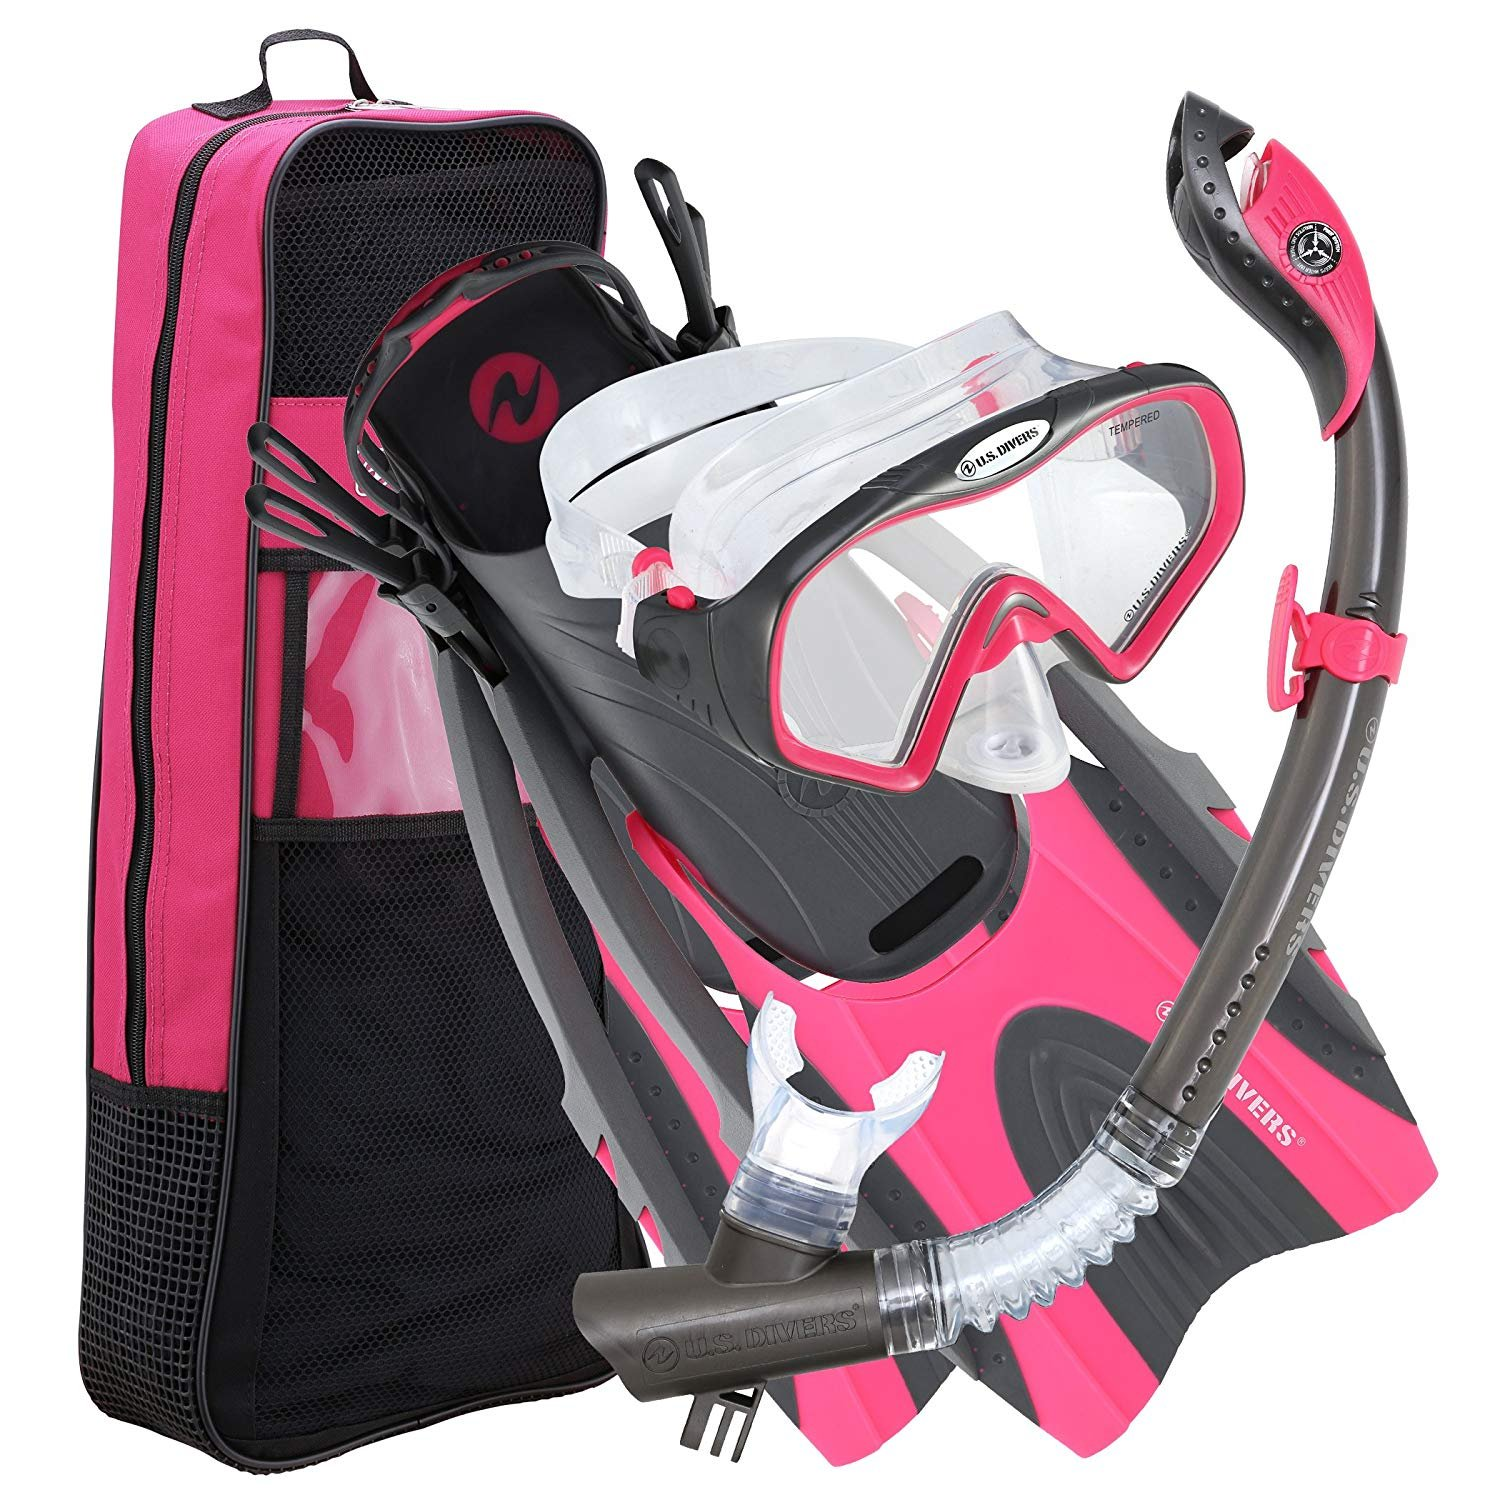 U.S. Divers Pro LX+ Snorkel Set with Starbuck Iii LX Purge Mask, Small/Medium 4-8.5, Gun Metal Pink by U.S. Divers